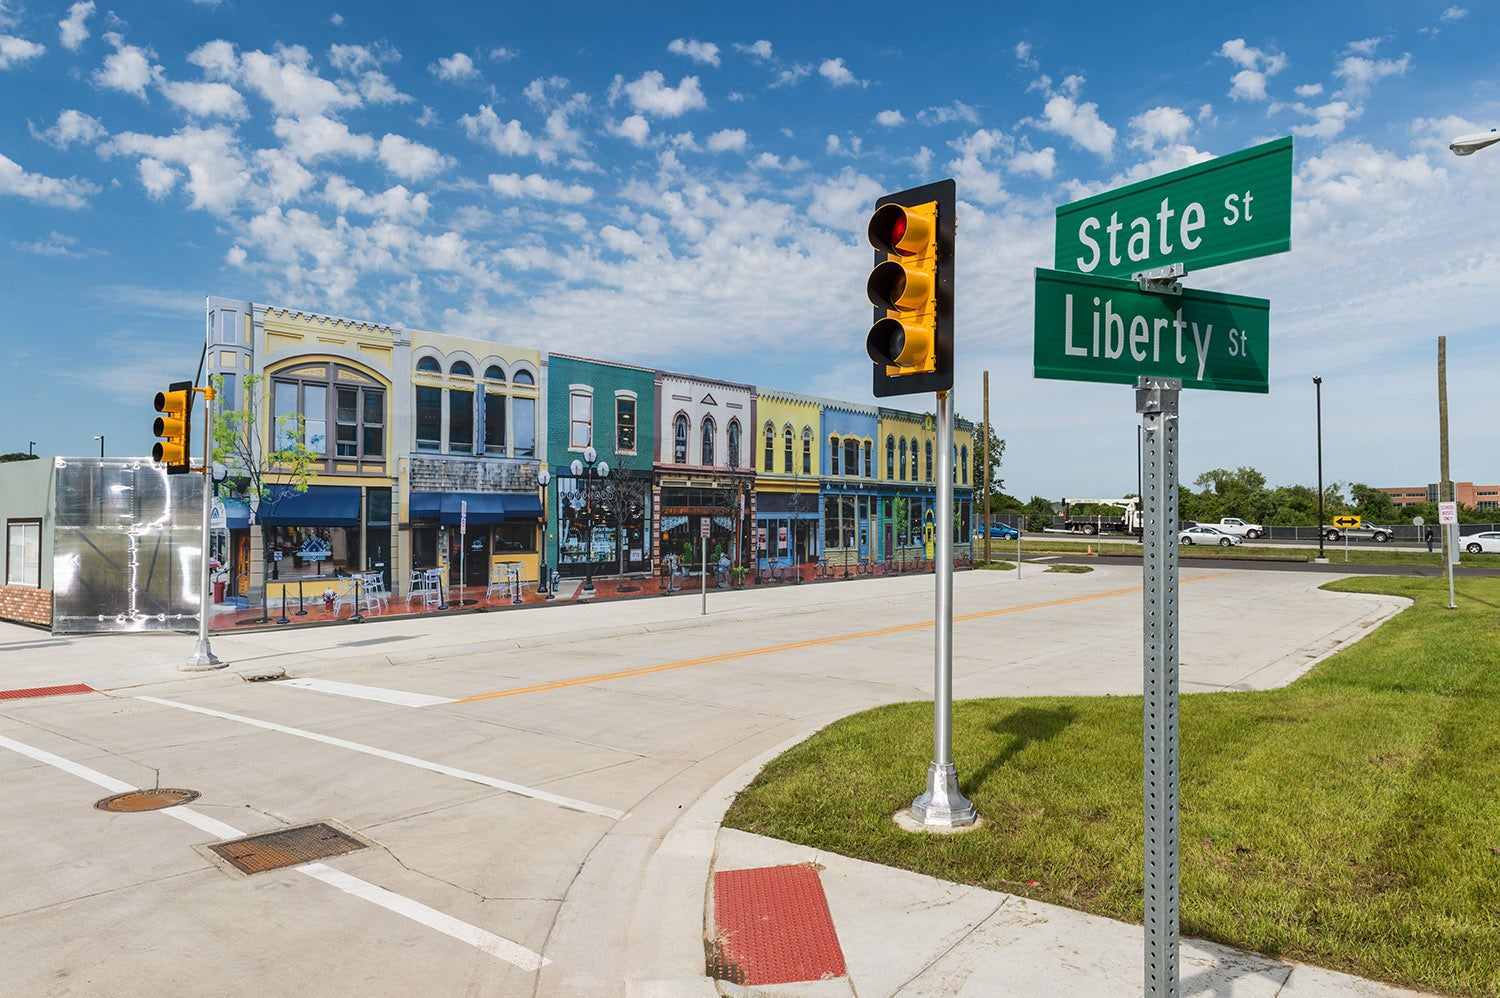 Welcome to Mcity: The Fake Town Built for Testing Driverless Cars